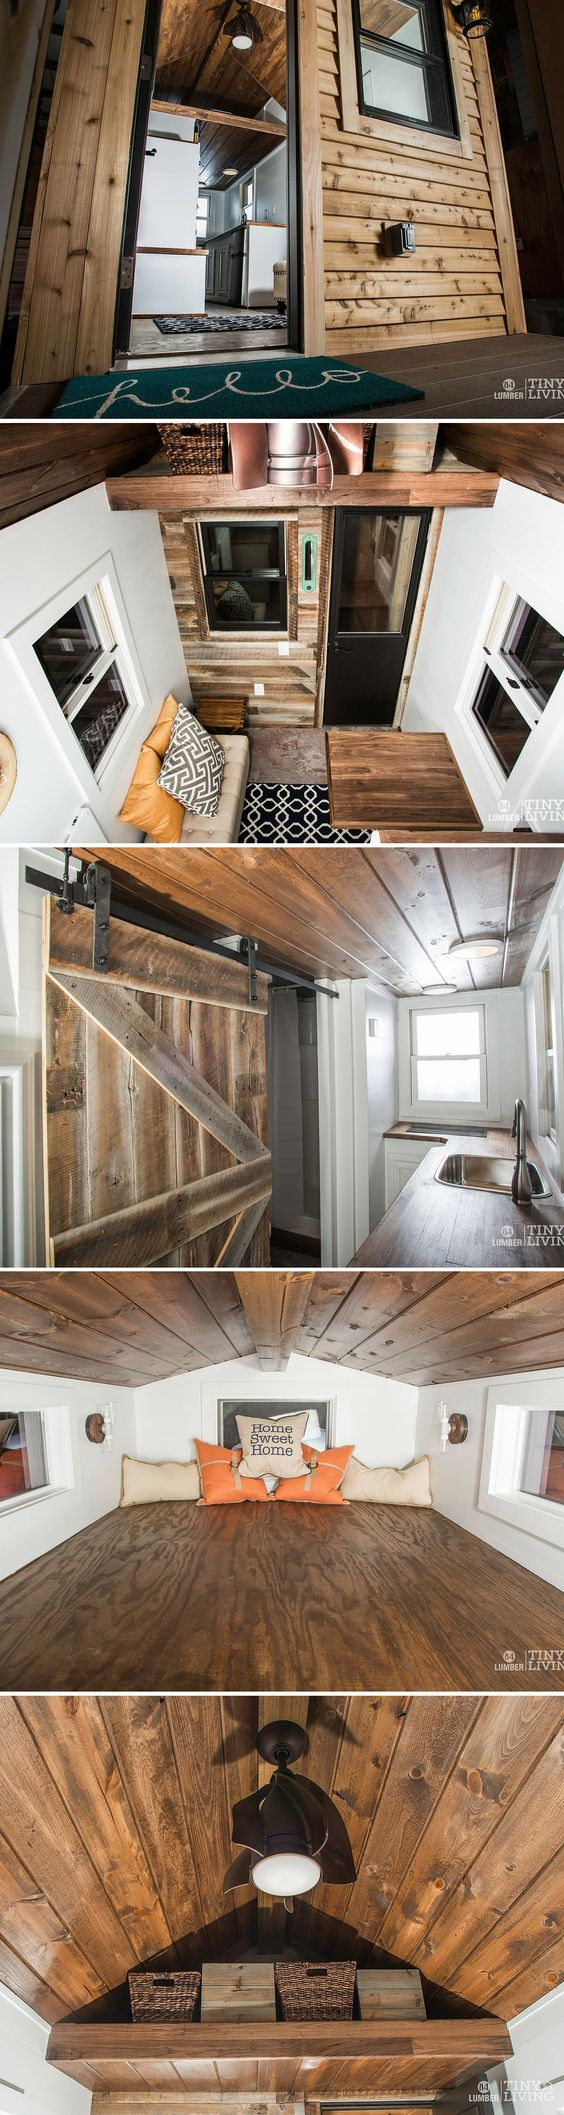 The Roving Tiny House By 84 Lumber A 154 Sq Ft Home On